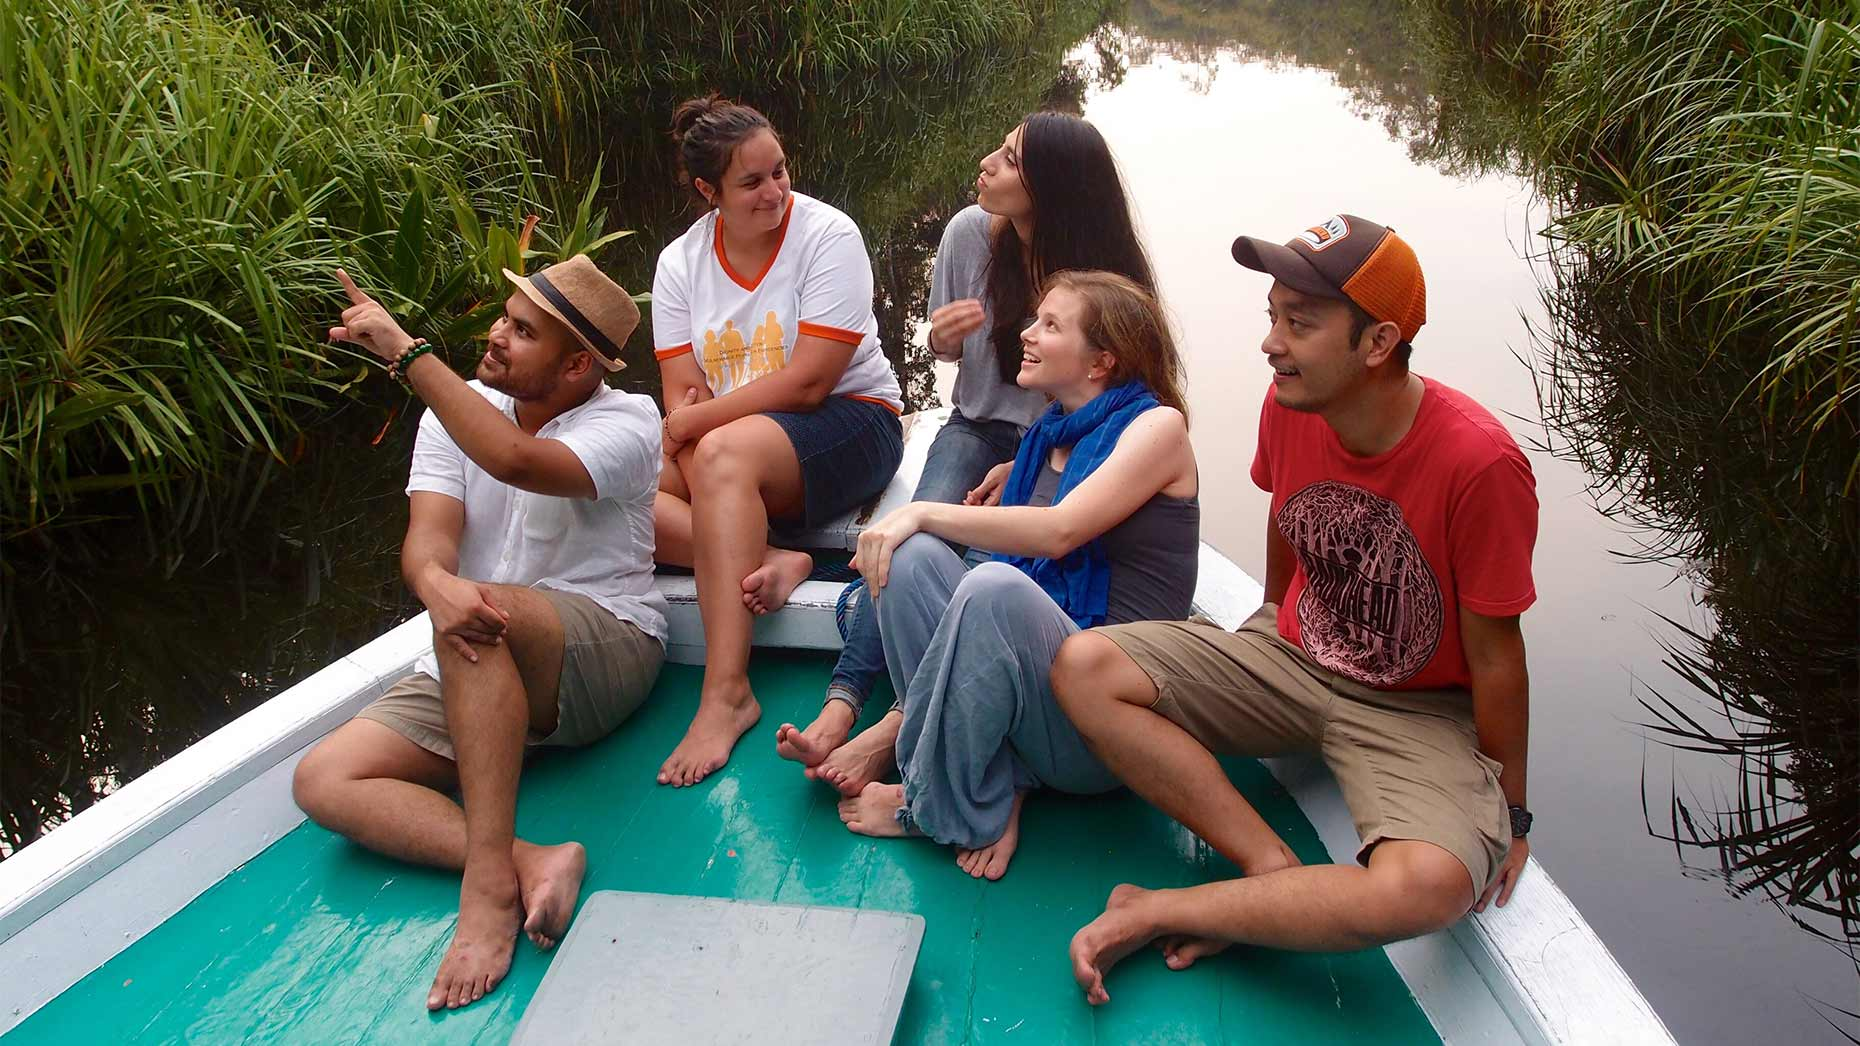 Five students floating down a river on a raft.